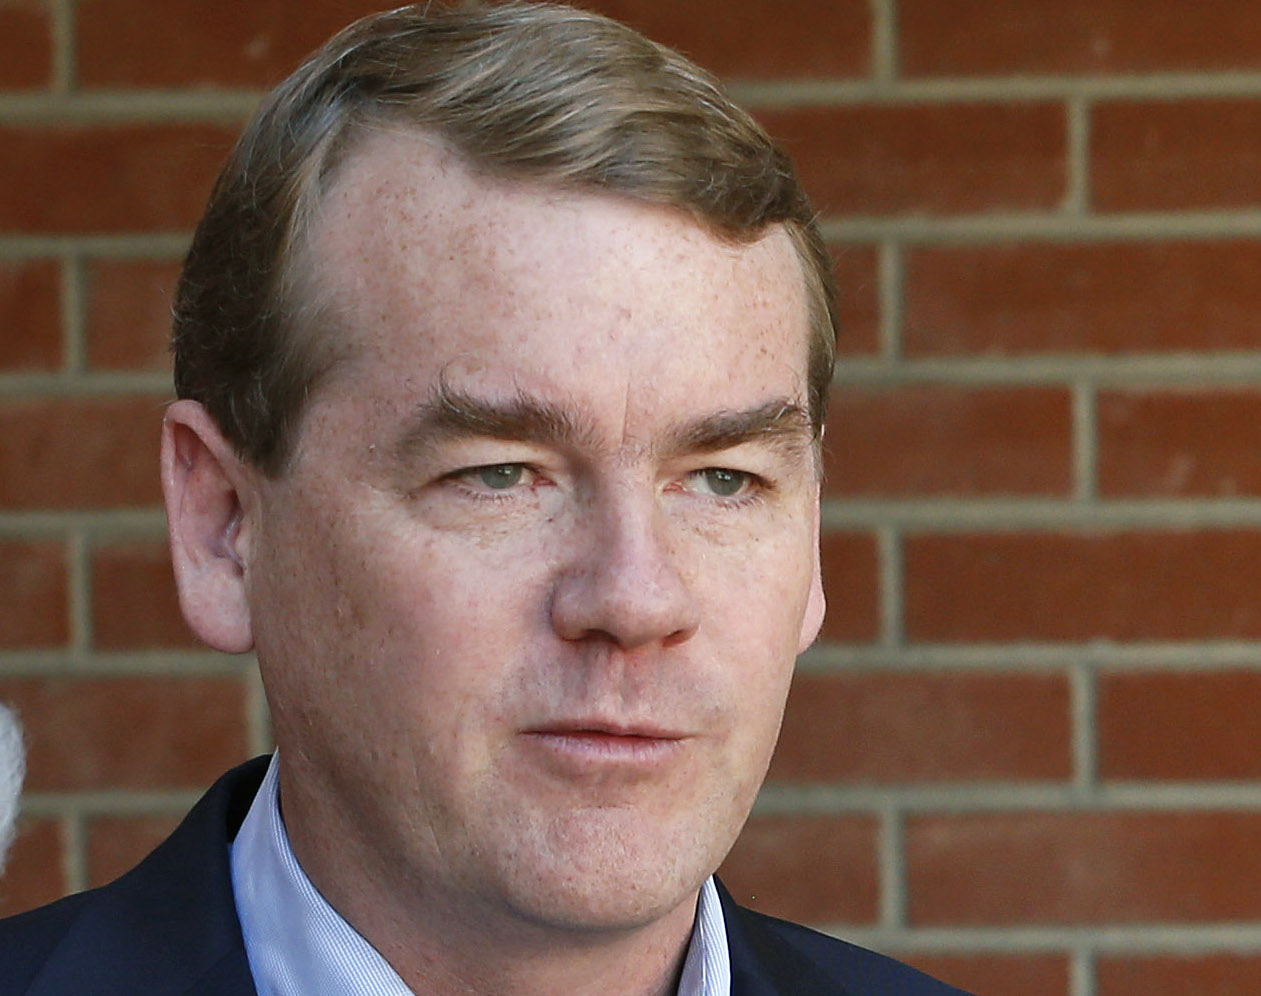 Photo: Sen. Michael Bennet